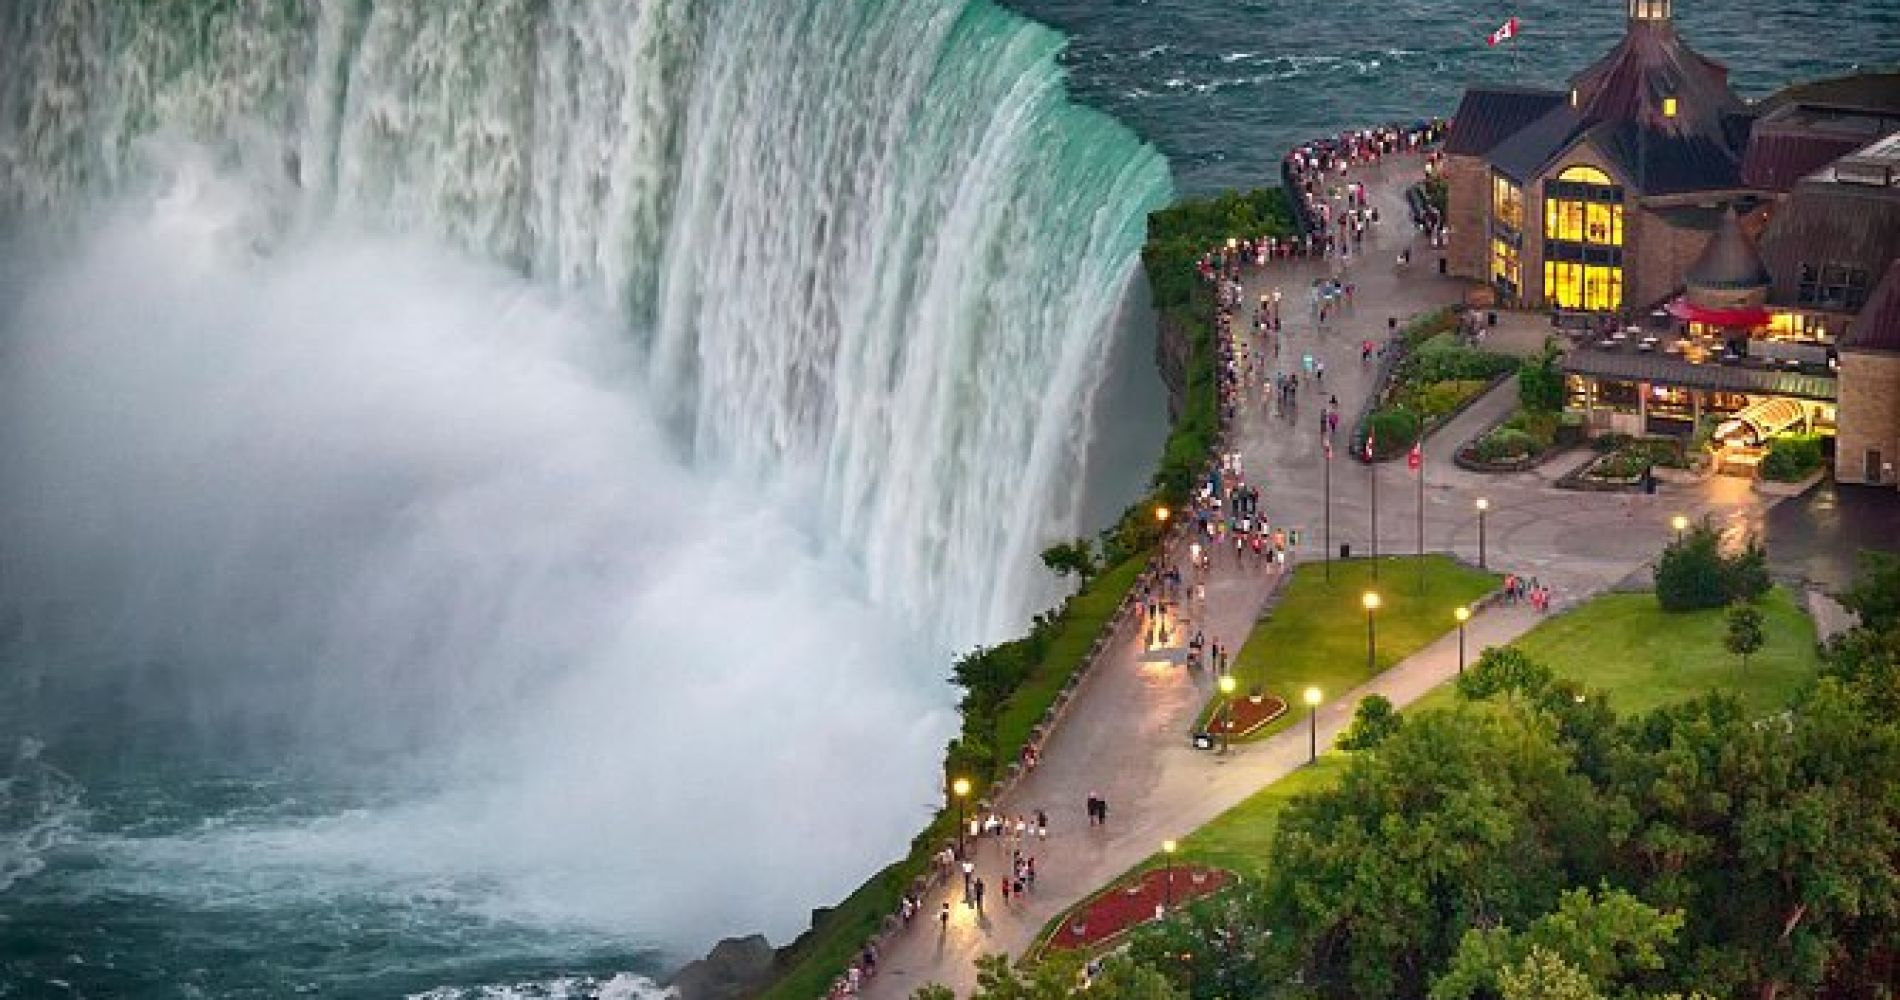 Niagara Falls Canada Tour from Niagara USA